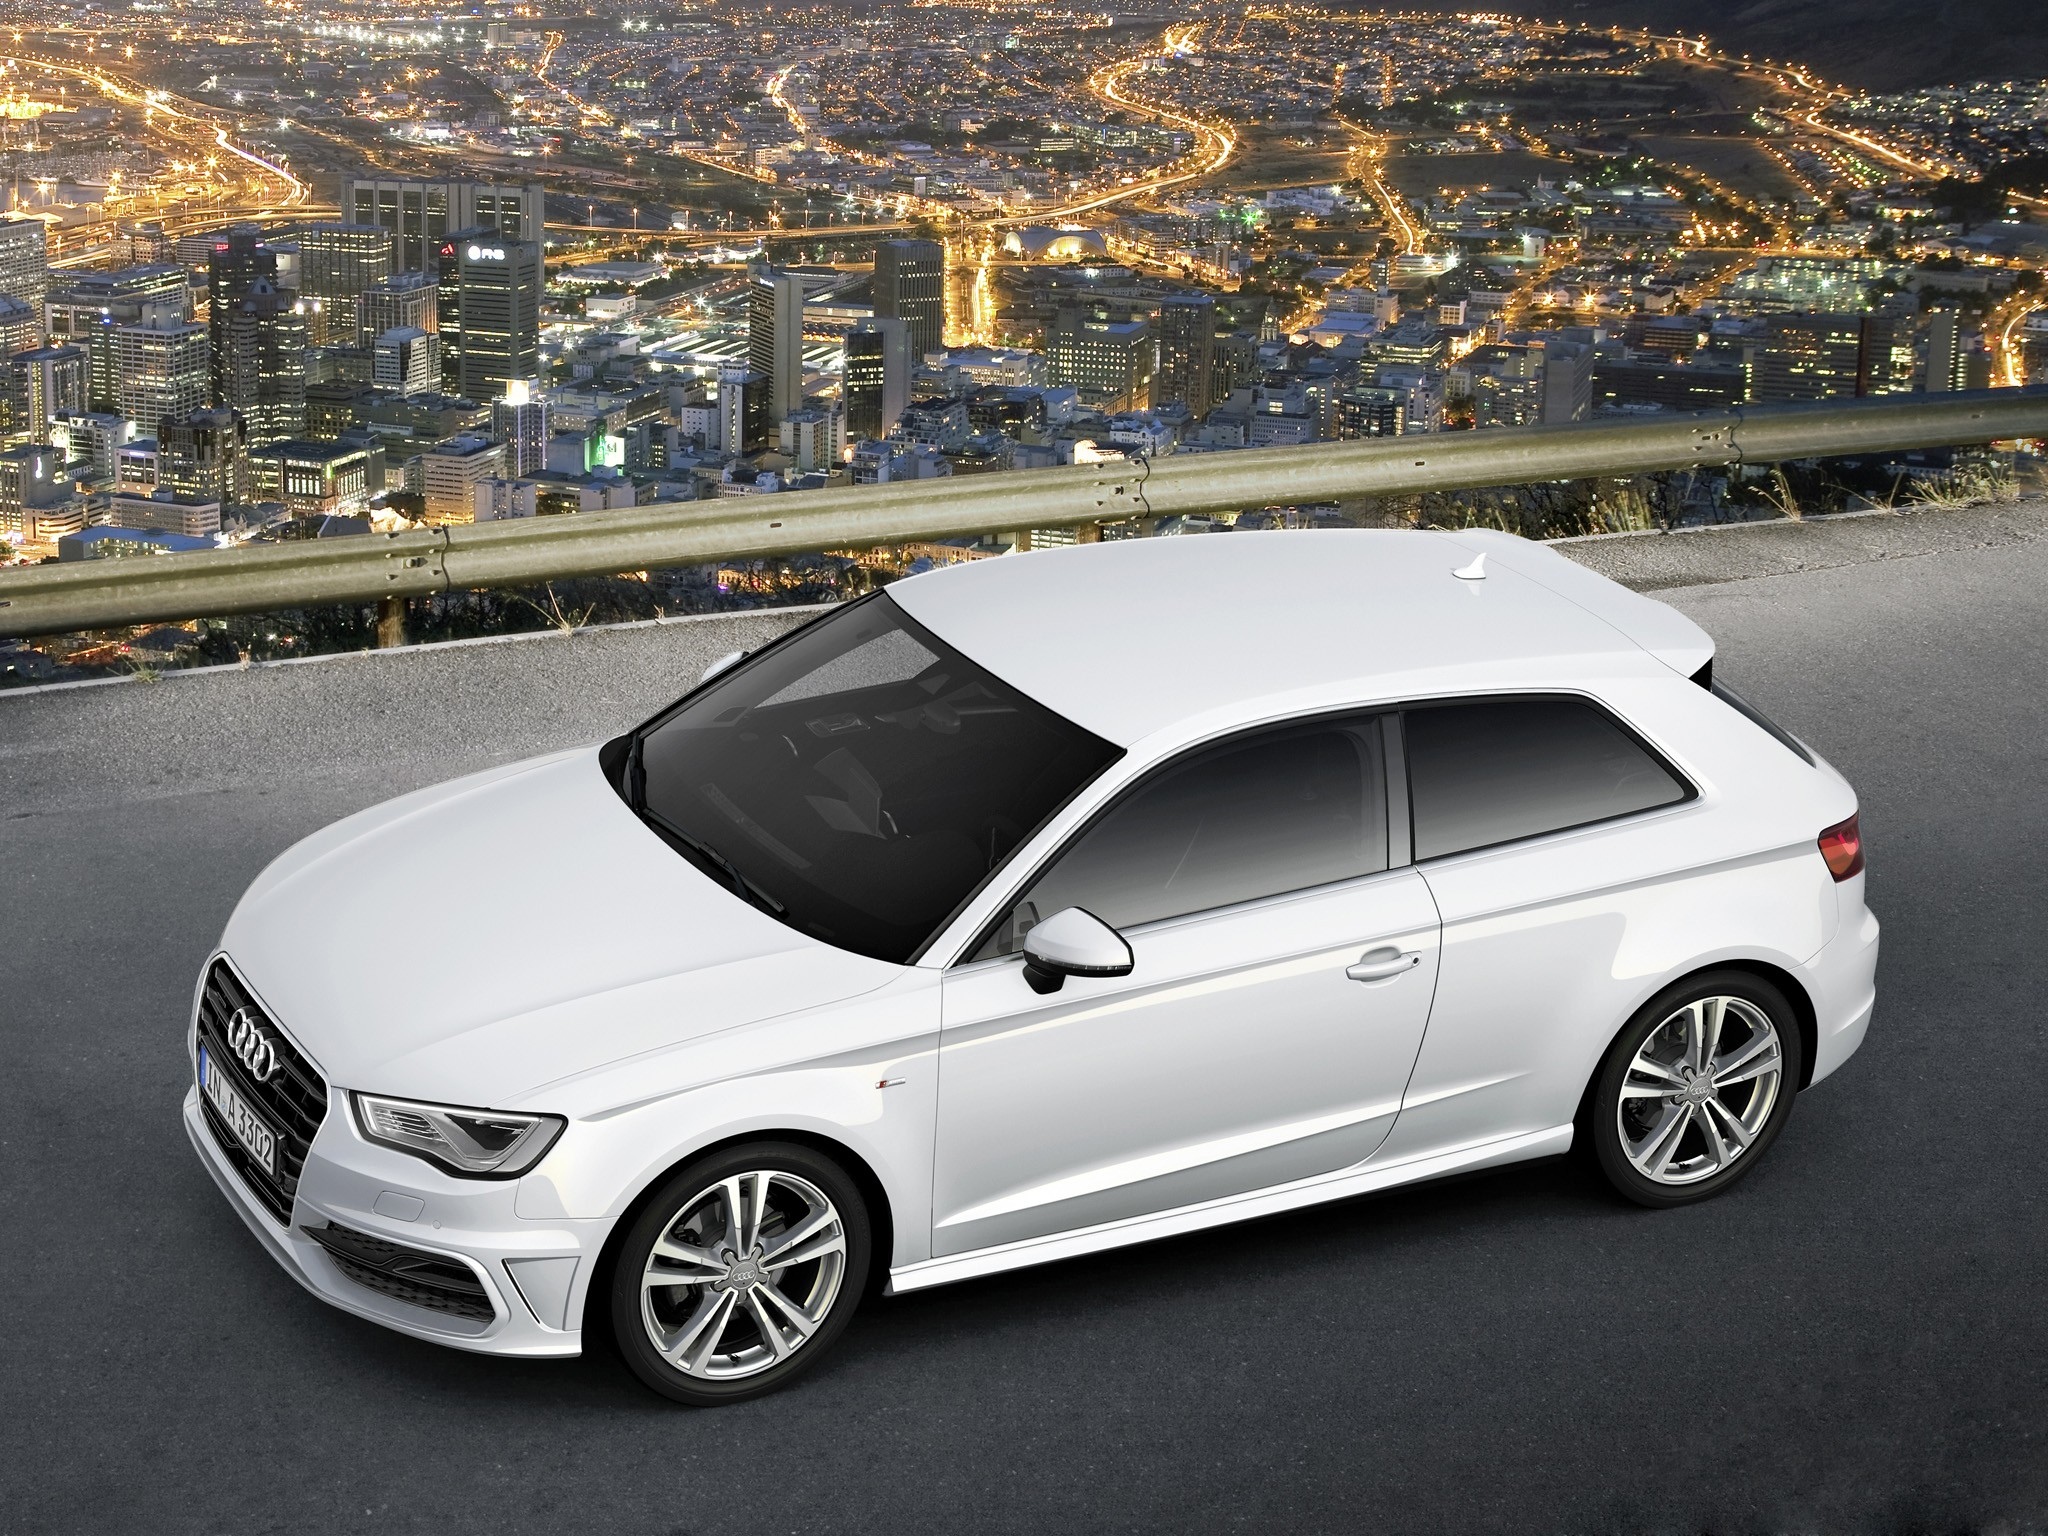 AUDI A3 Hatchback (3 Doors) Specs & Photos